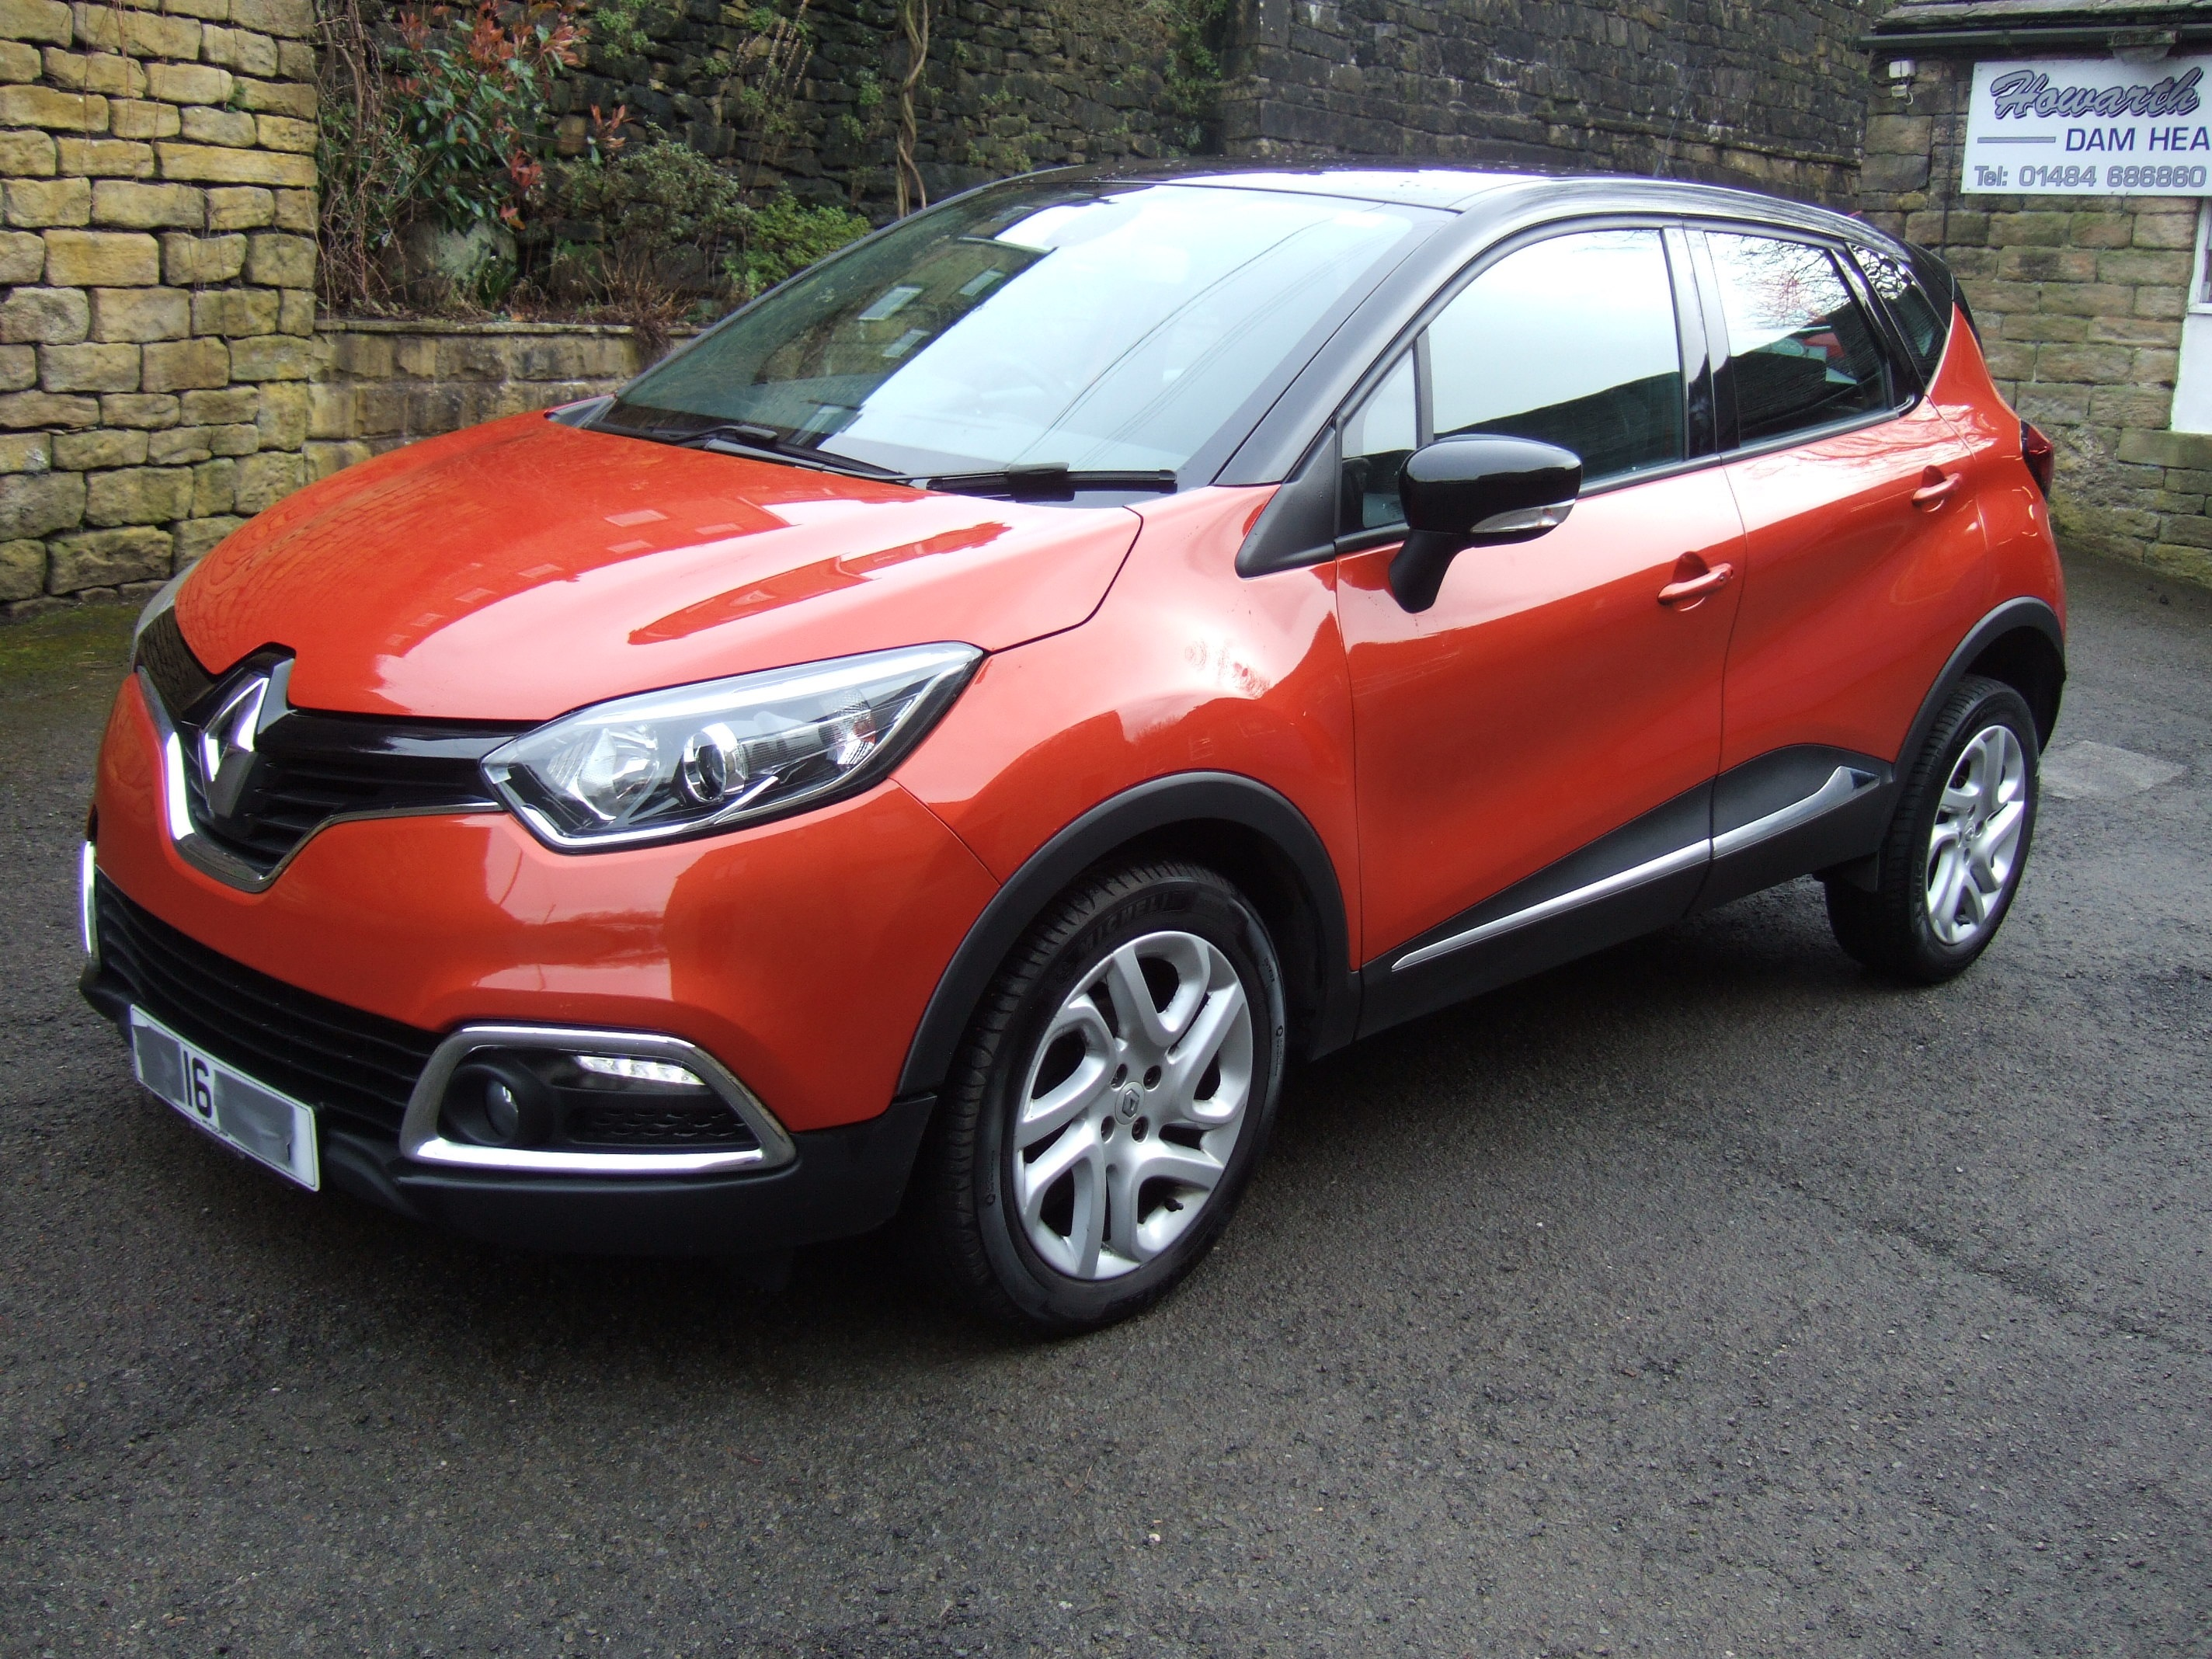 16 Reg Renault Captur Dynamique Nav Howarth Motor Co